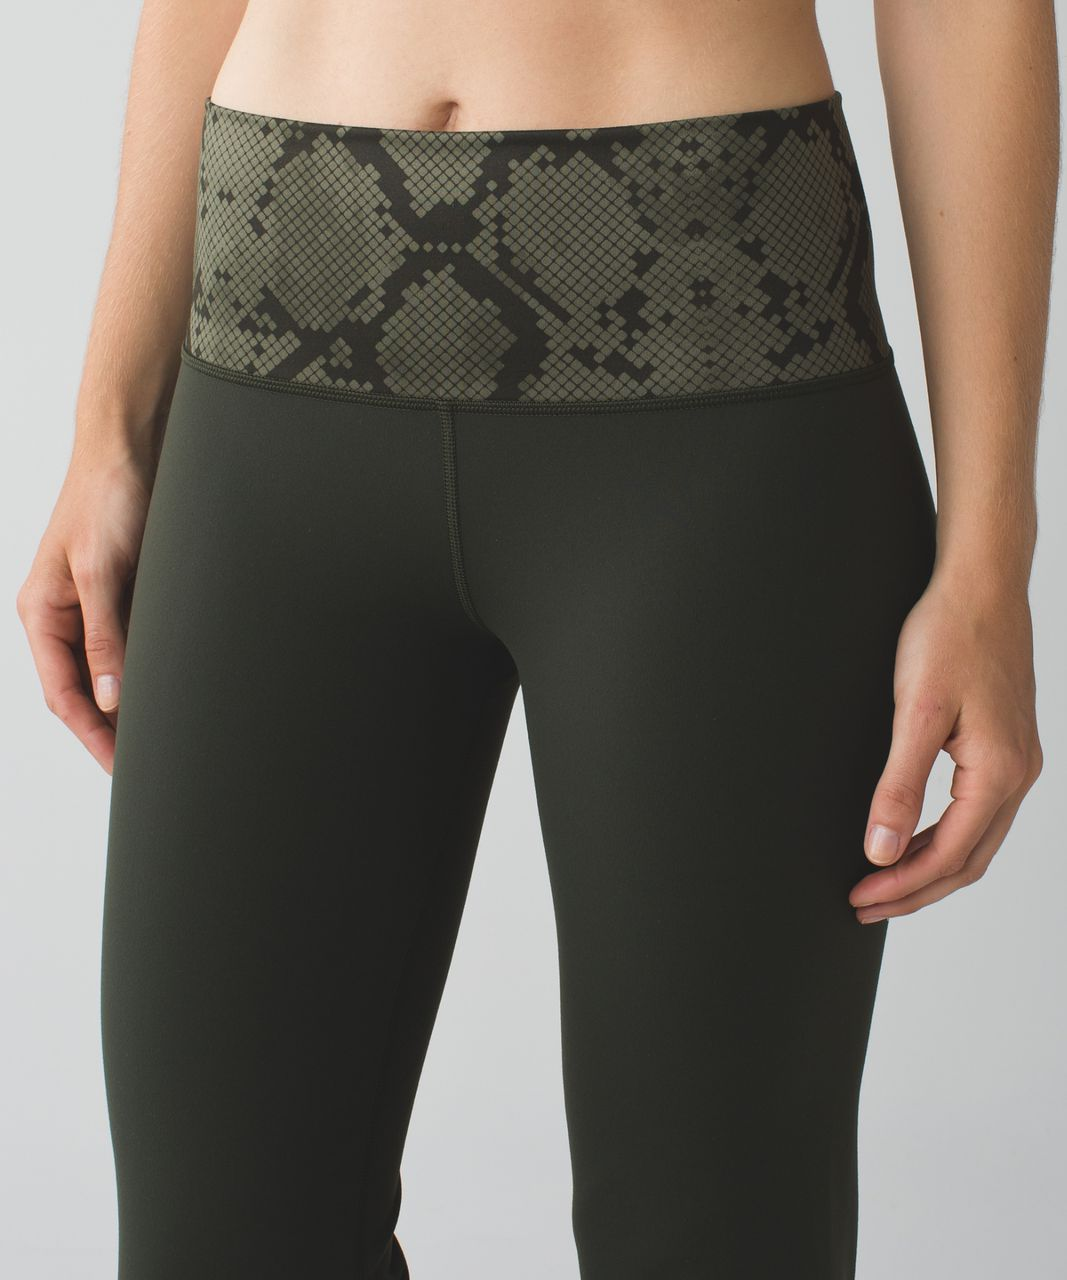 Lululemon Groove Pant III (Regular)   *Full-On Luon - Gator Green / Ziggy Snake Fatigue Green Gator Green